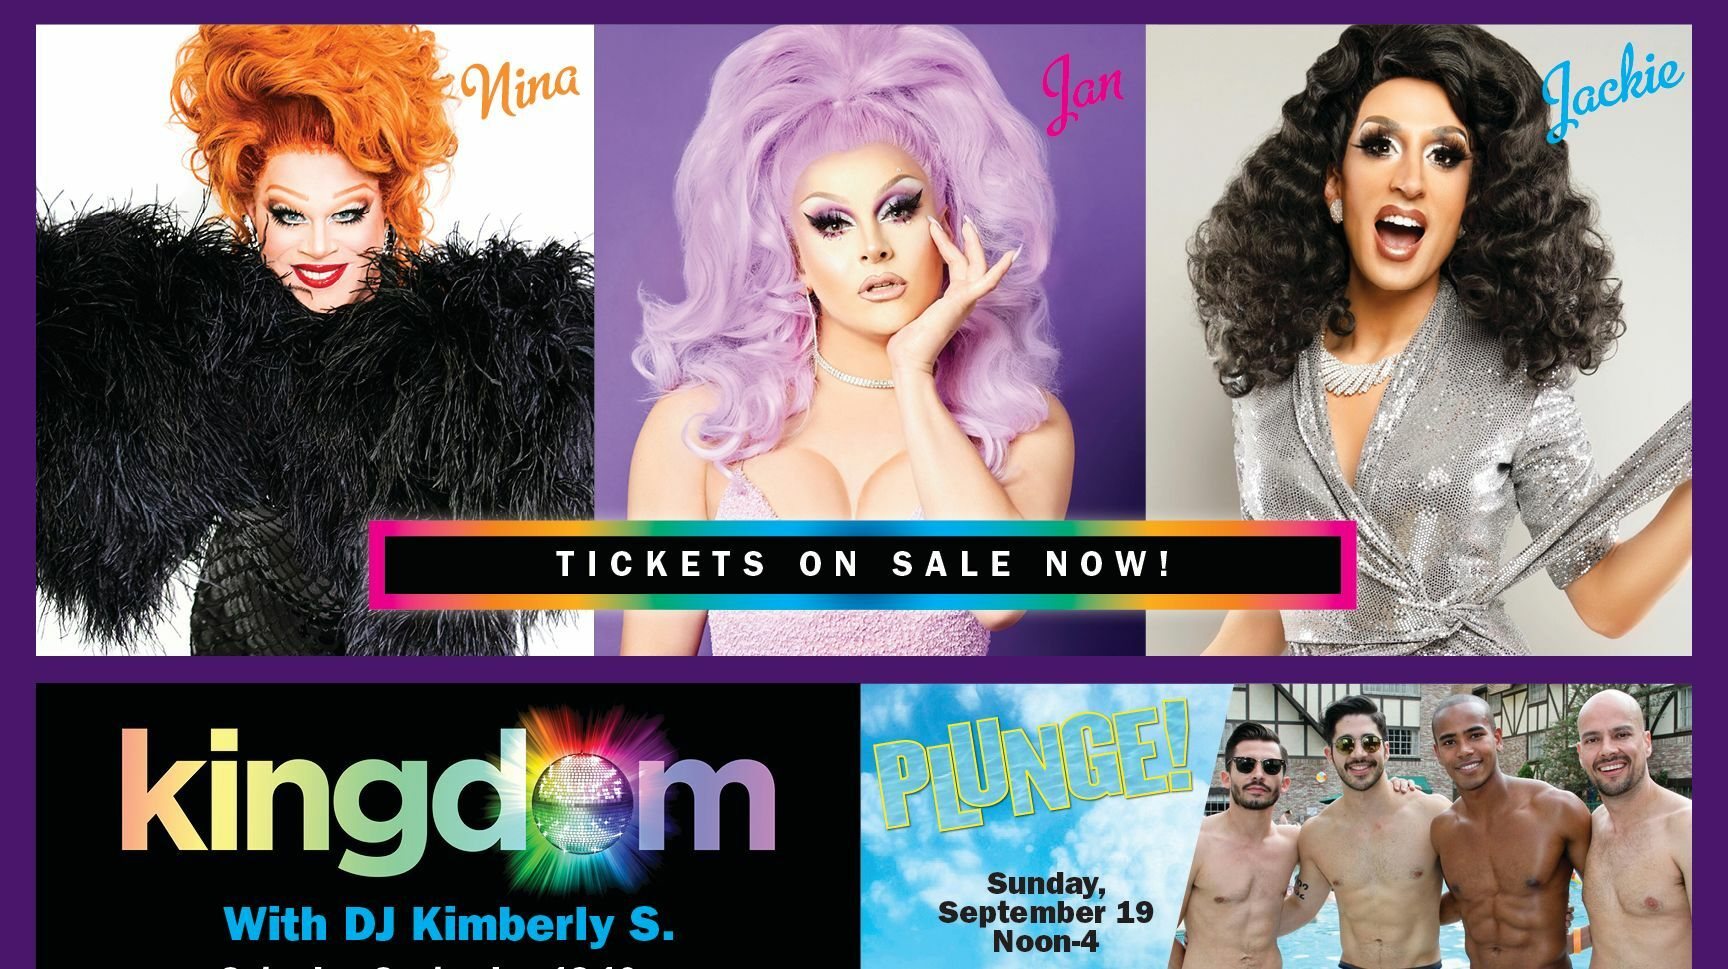 Gay Days Anaheim VIP Silver Pass Featuring Jackie Cox and Nina West